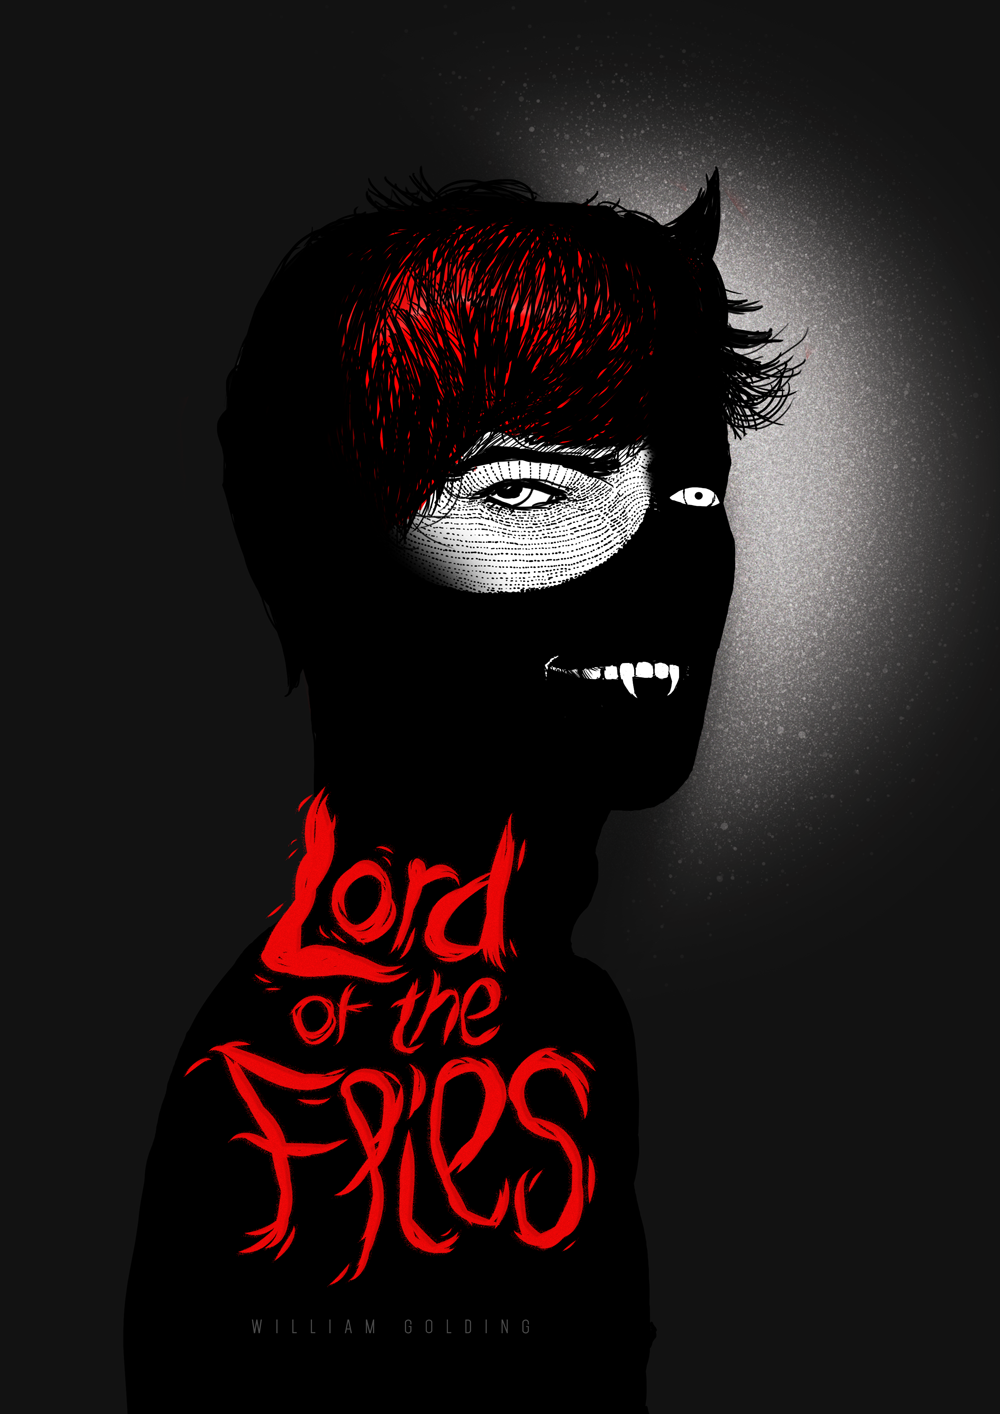 the lord of the flies book Lord of the flies has been a perennial favorite since its first publication in 1954, and this excellent novel is a deserved staple of school reading lists golding keeps his prose unadorned and straightforward, and the result is a page-turning entertainment, as well as a highly thought-provoking work of literature.